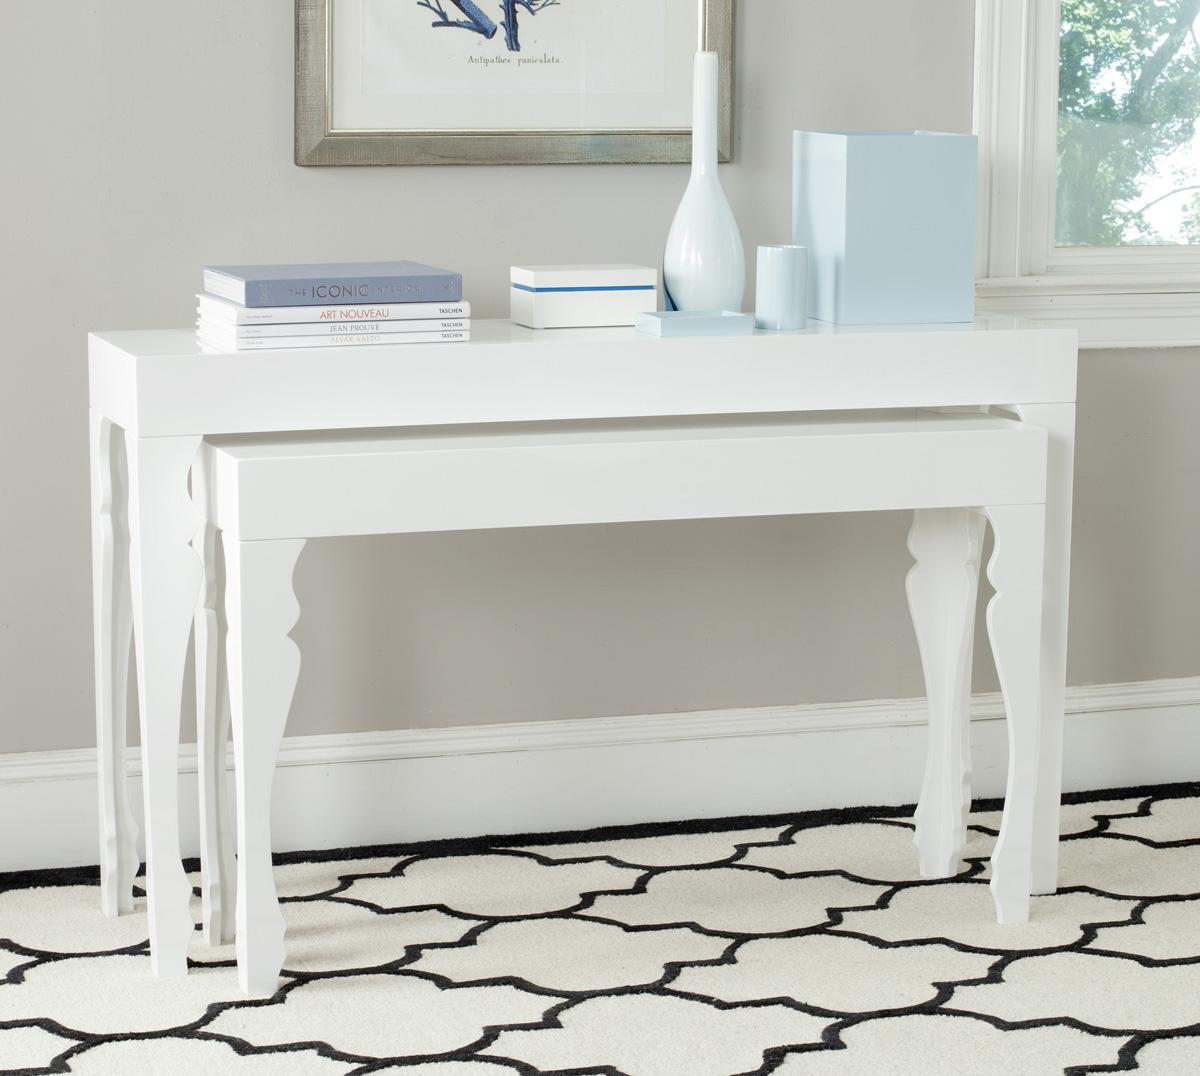 consoles furniture safavieh room white lacquer accent table share this product lack bedside designer legs ikea storage bins cement blue outdoor side industrial west elm entryway